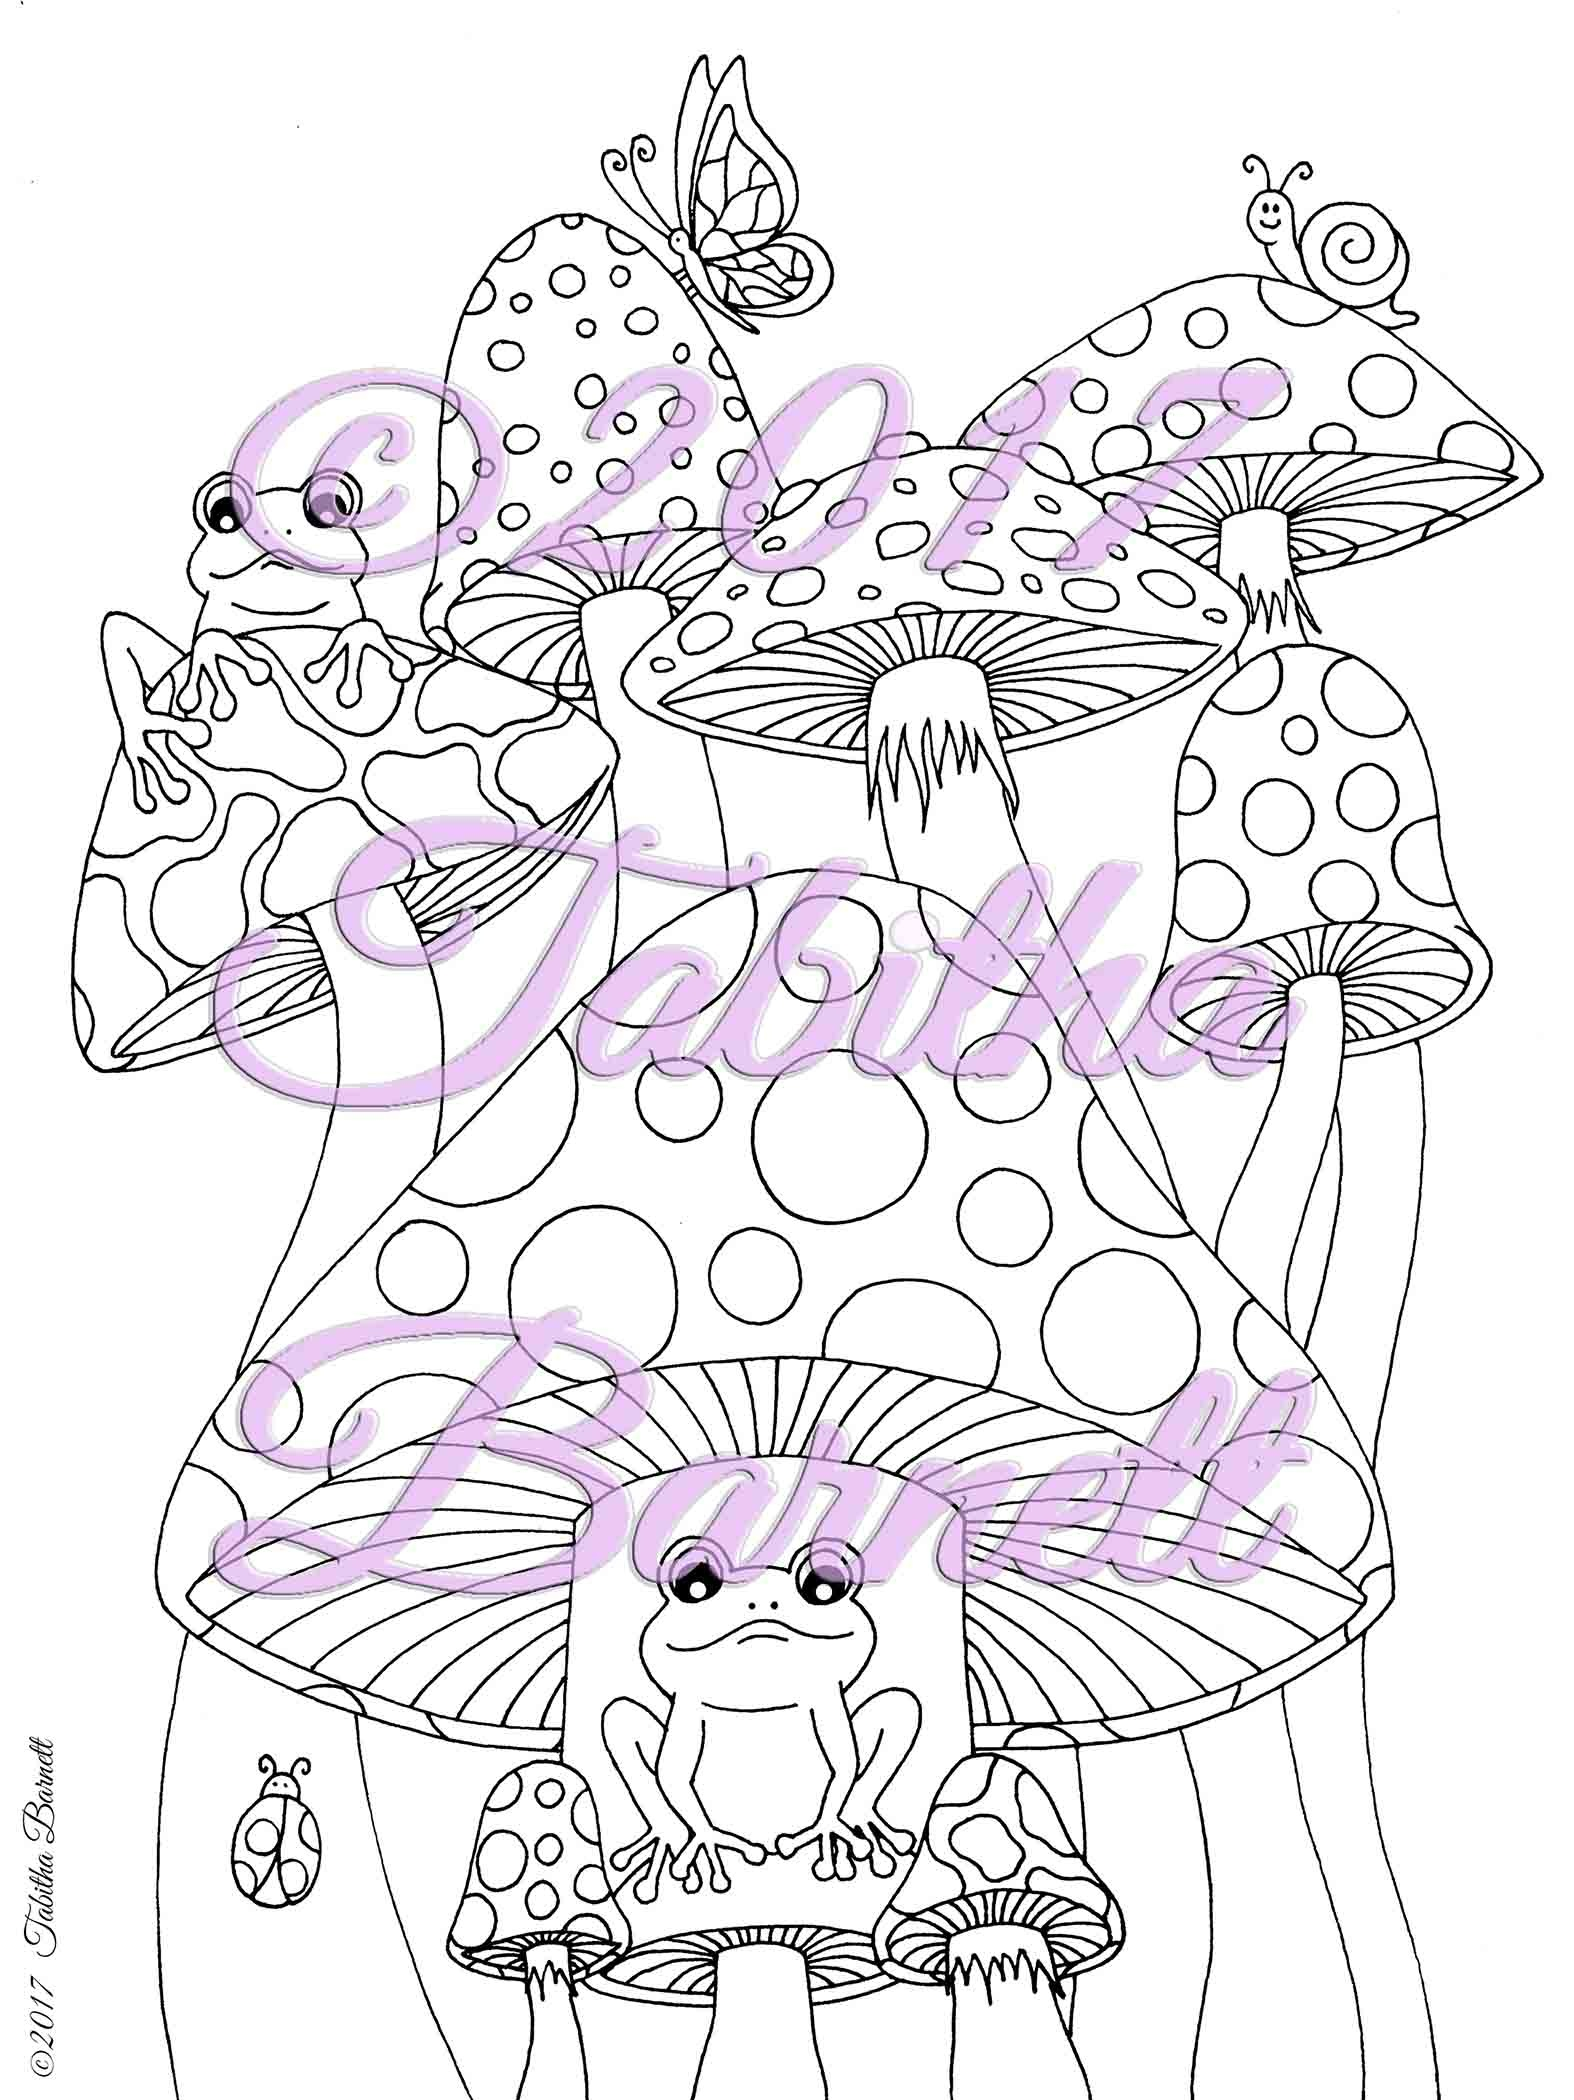 Shrooms and Frogs Adult Coloring Page JPG